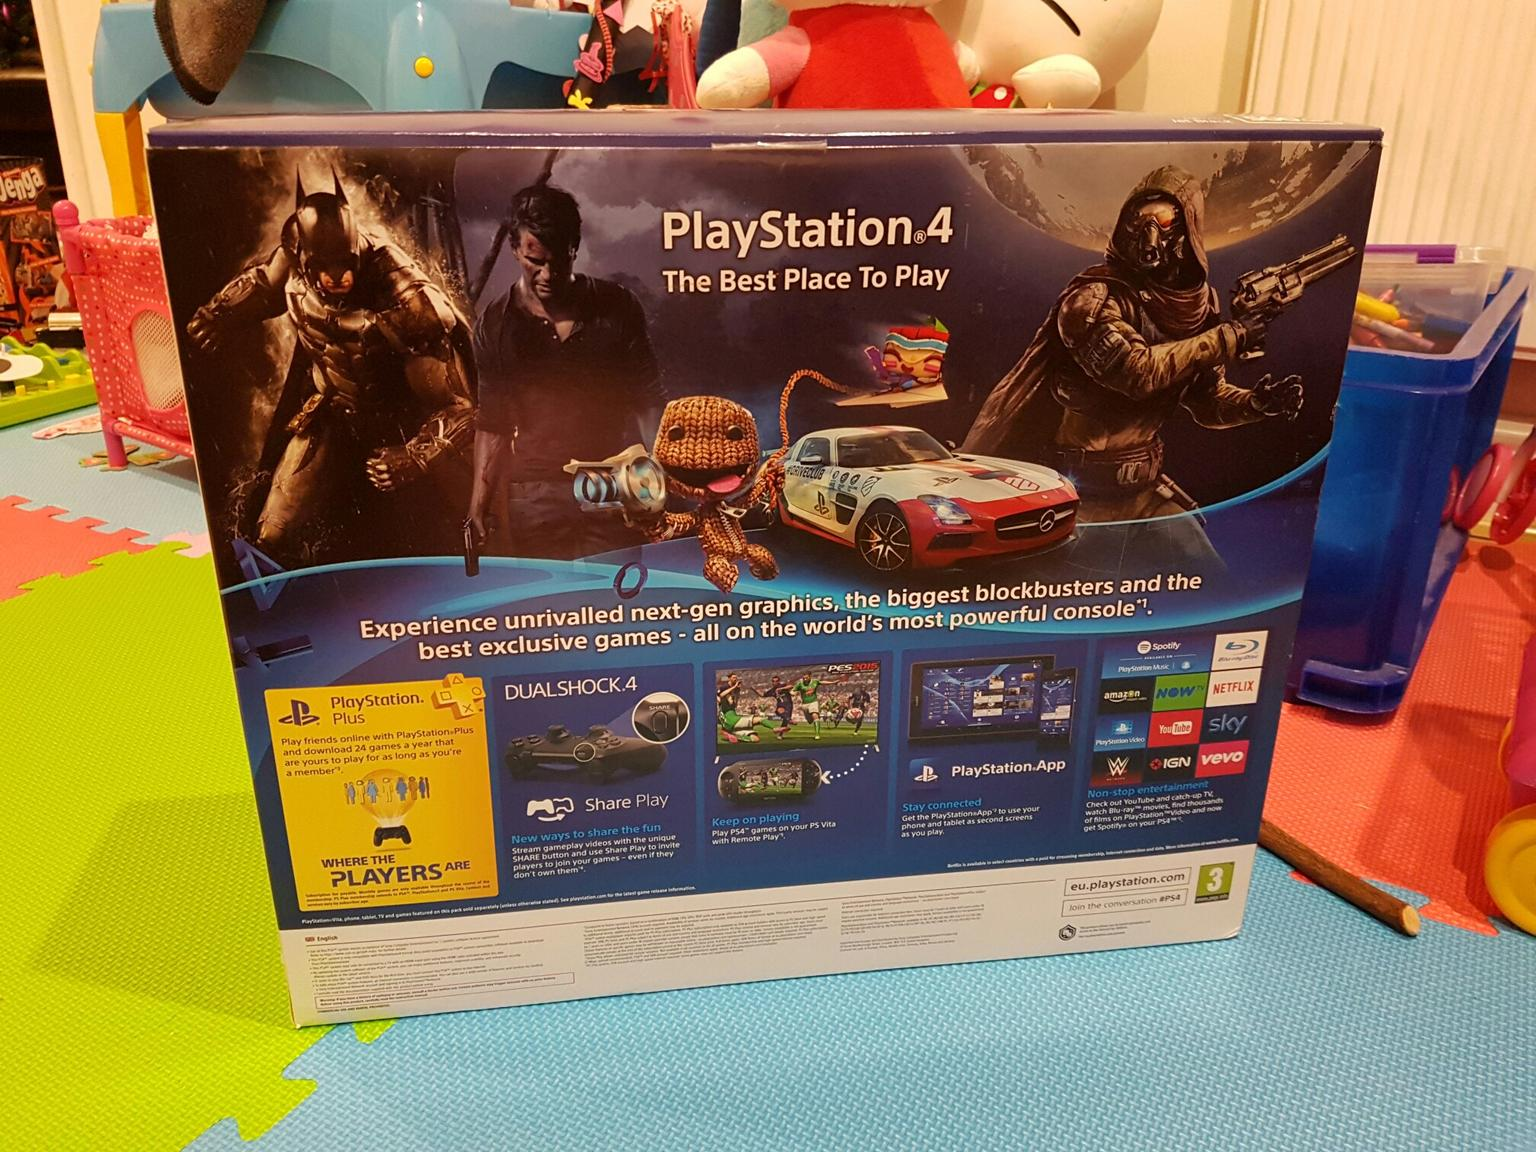 Playstation 4 PS4 500gb Console CUH-1216A